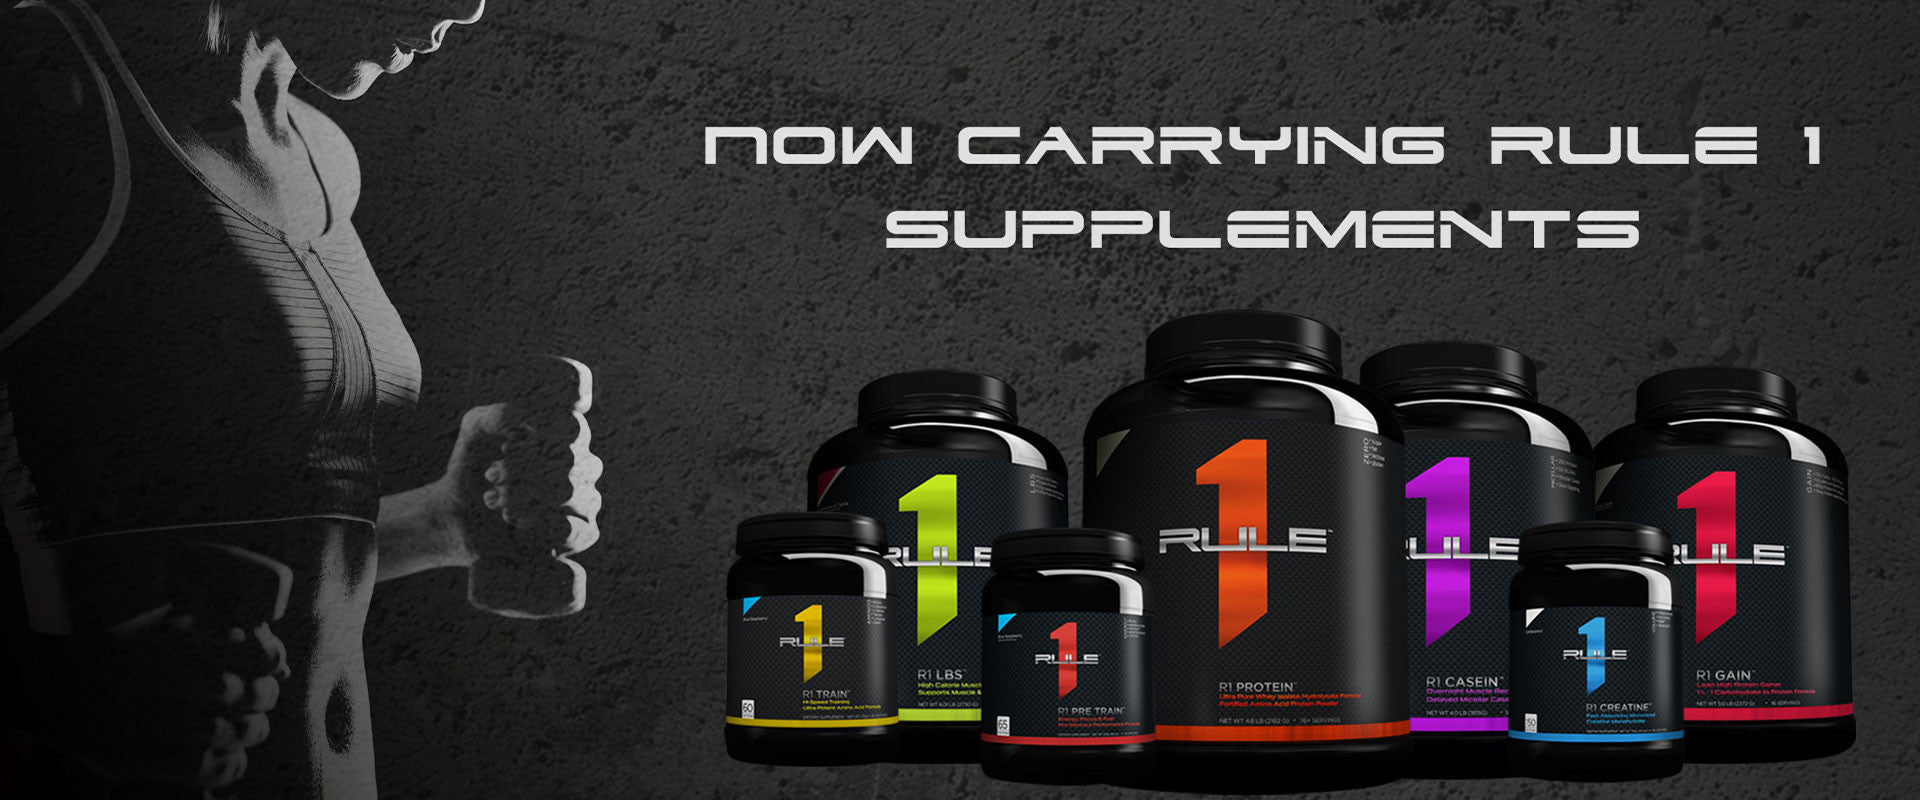 Now carrying rule 1 supplements